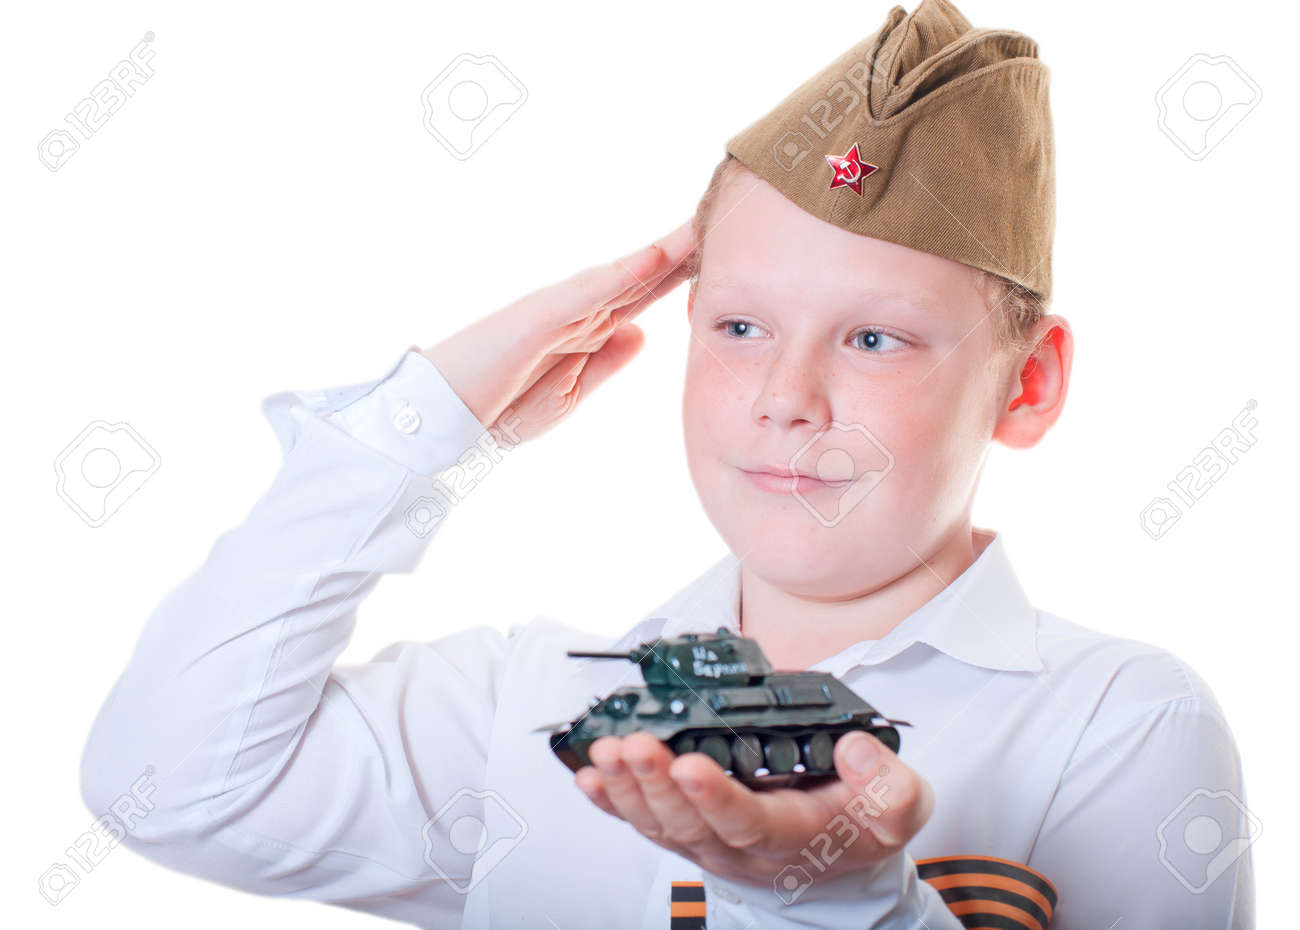 The boy is holding a plasticine model of the tank Stock Photo - 13265576